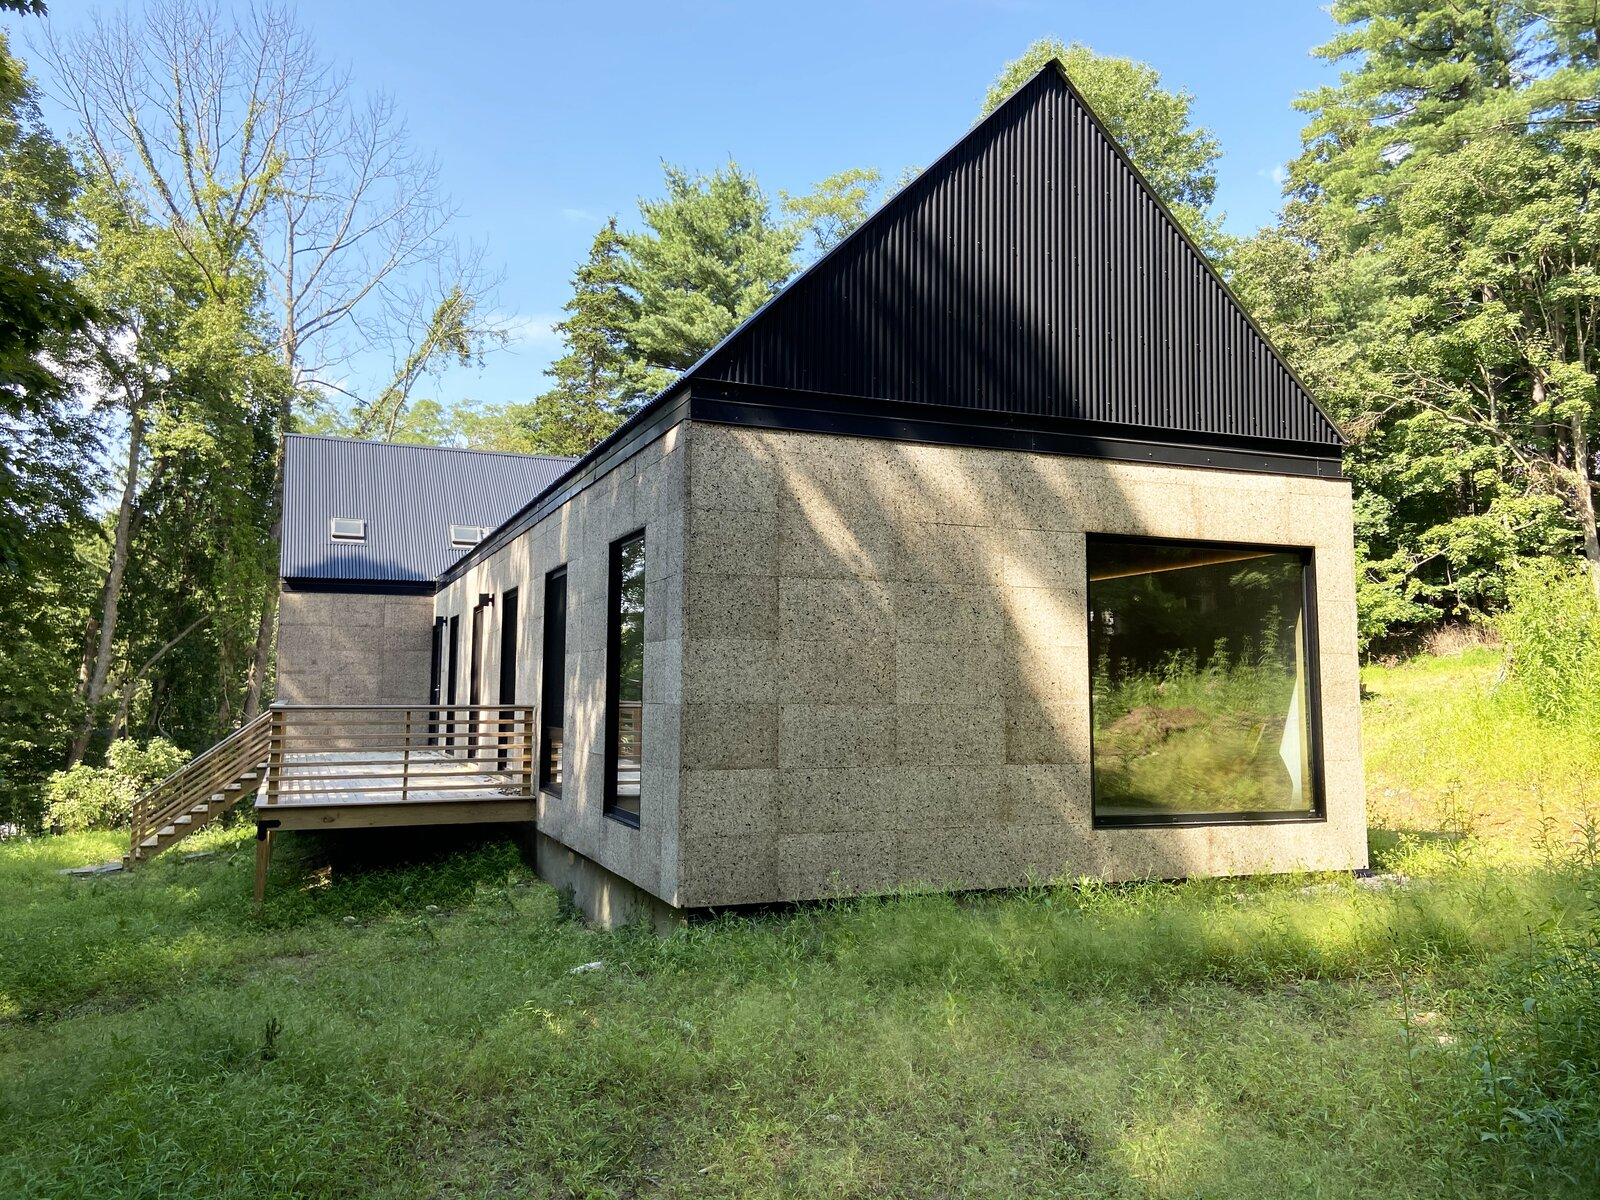 Exterior, House Building Type, Metal Roof Material, Metal Siding Material, Gable RoofLine, and Wood Siding Material Front exterior corner  Cork Haven by Multitude Studio